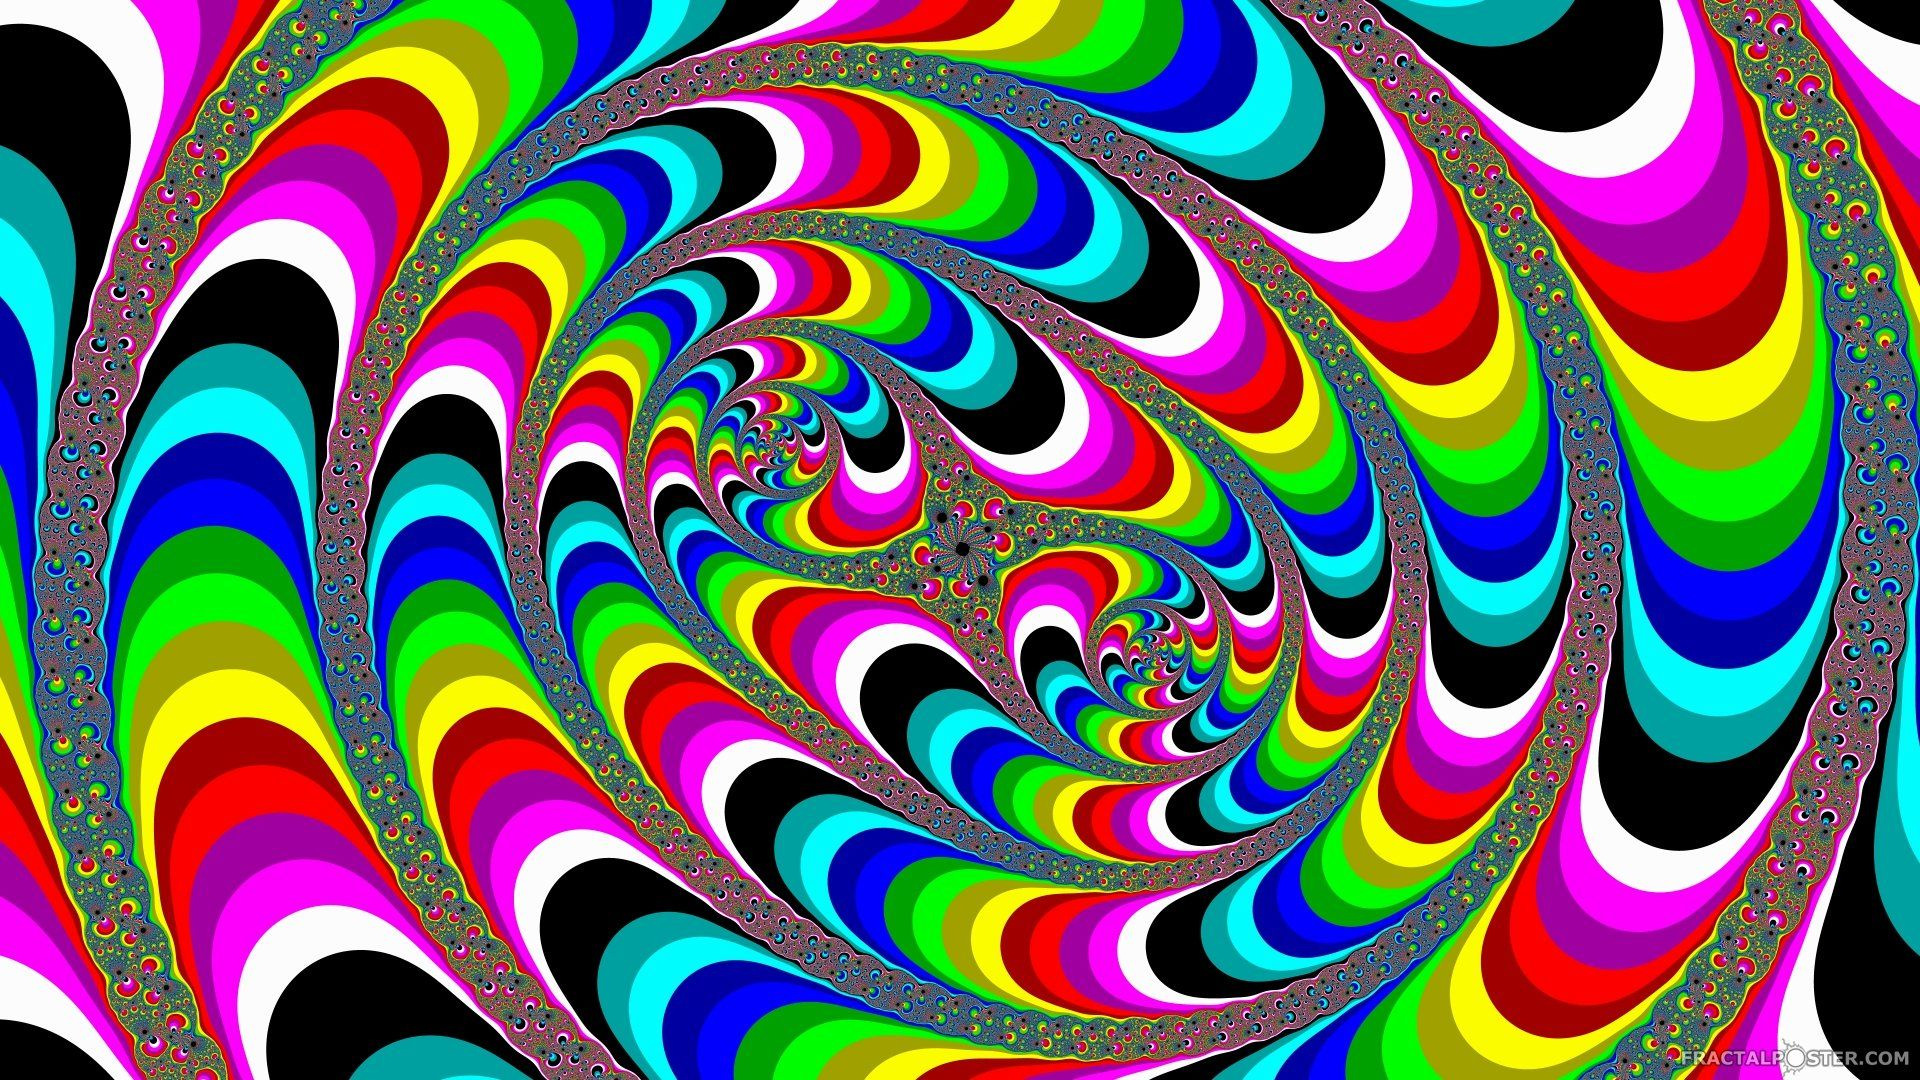 Great Wallpaper Macbook Psychedelic - e27b7555a0af2916270753799b2546de  You Should Have_25917.jpg